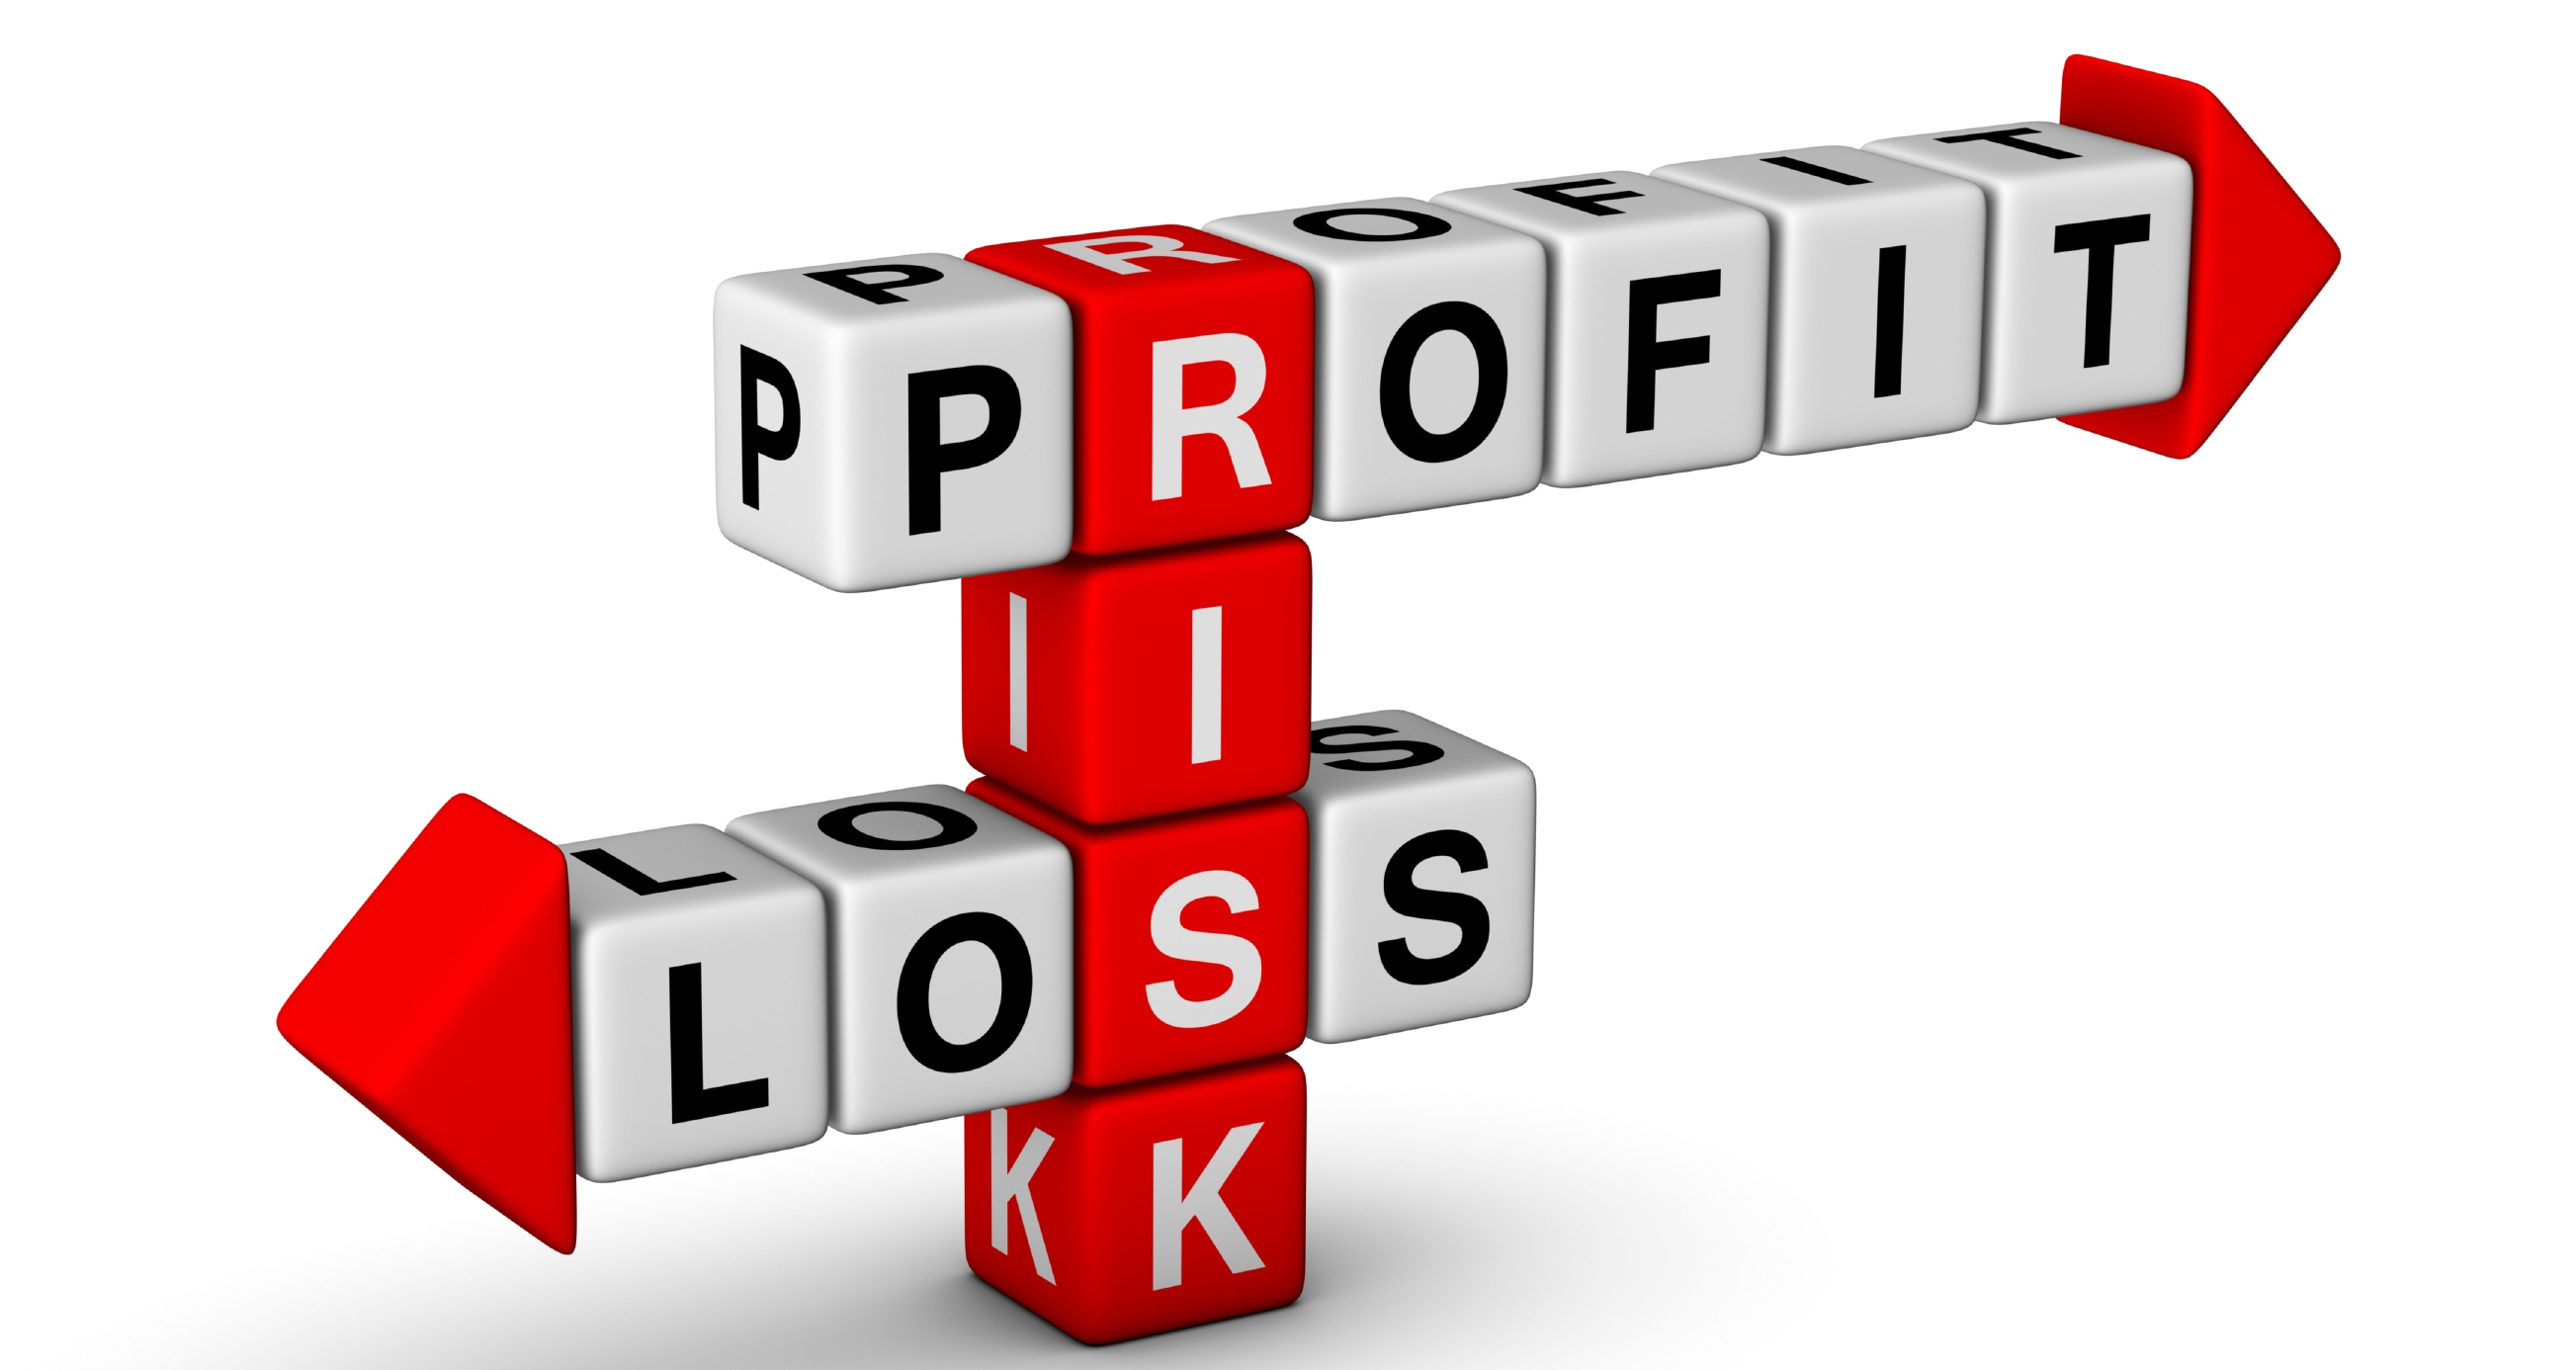 Risk, Profit and Loss